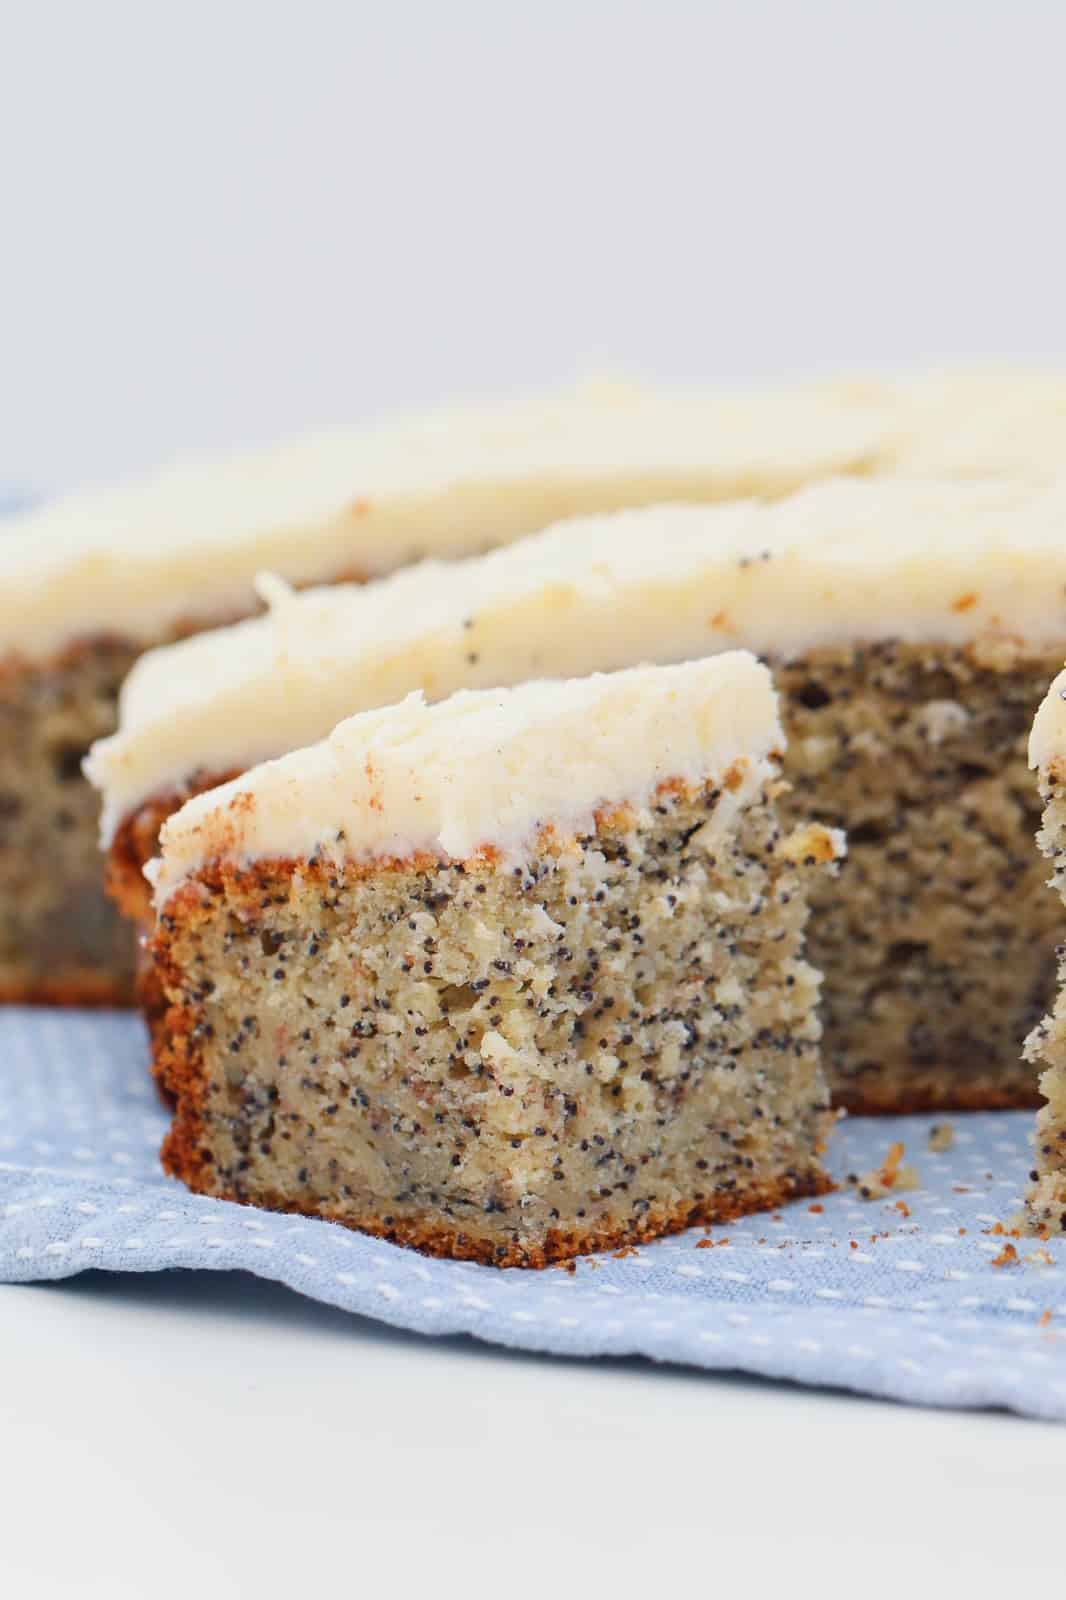 A piece of frosted poppyseed cake on a blue and white tea towel in front of the rest of the sliced cake.